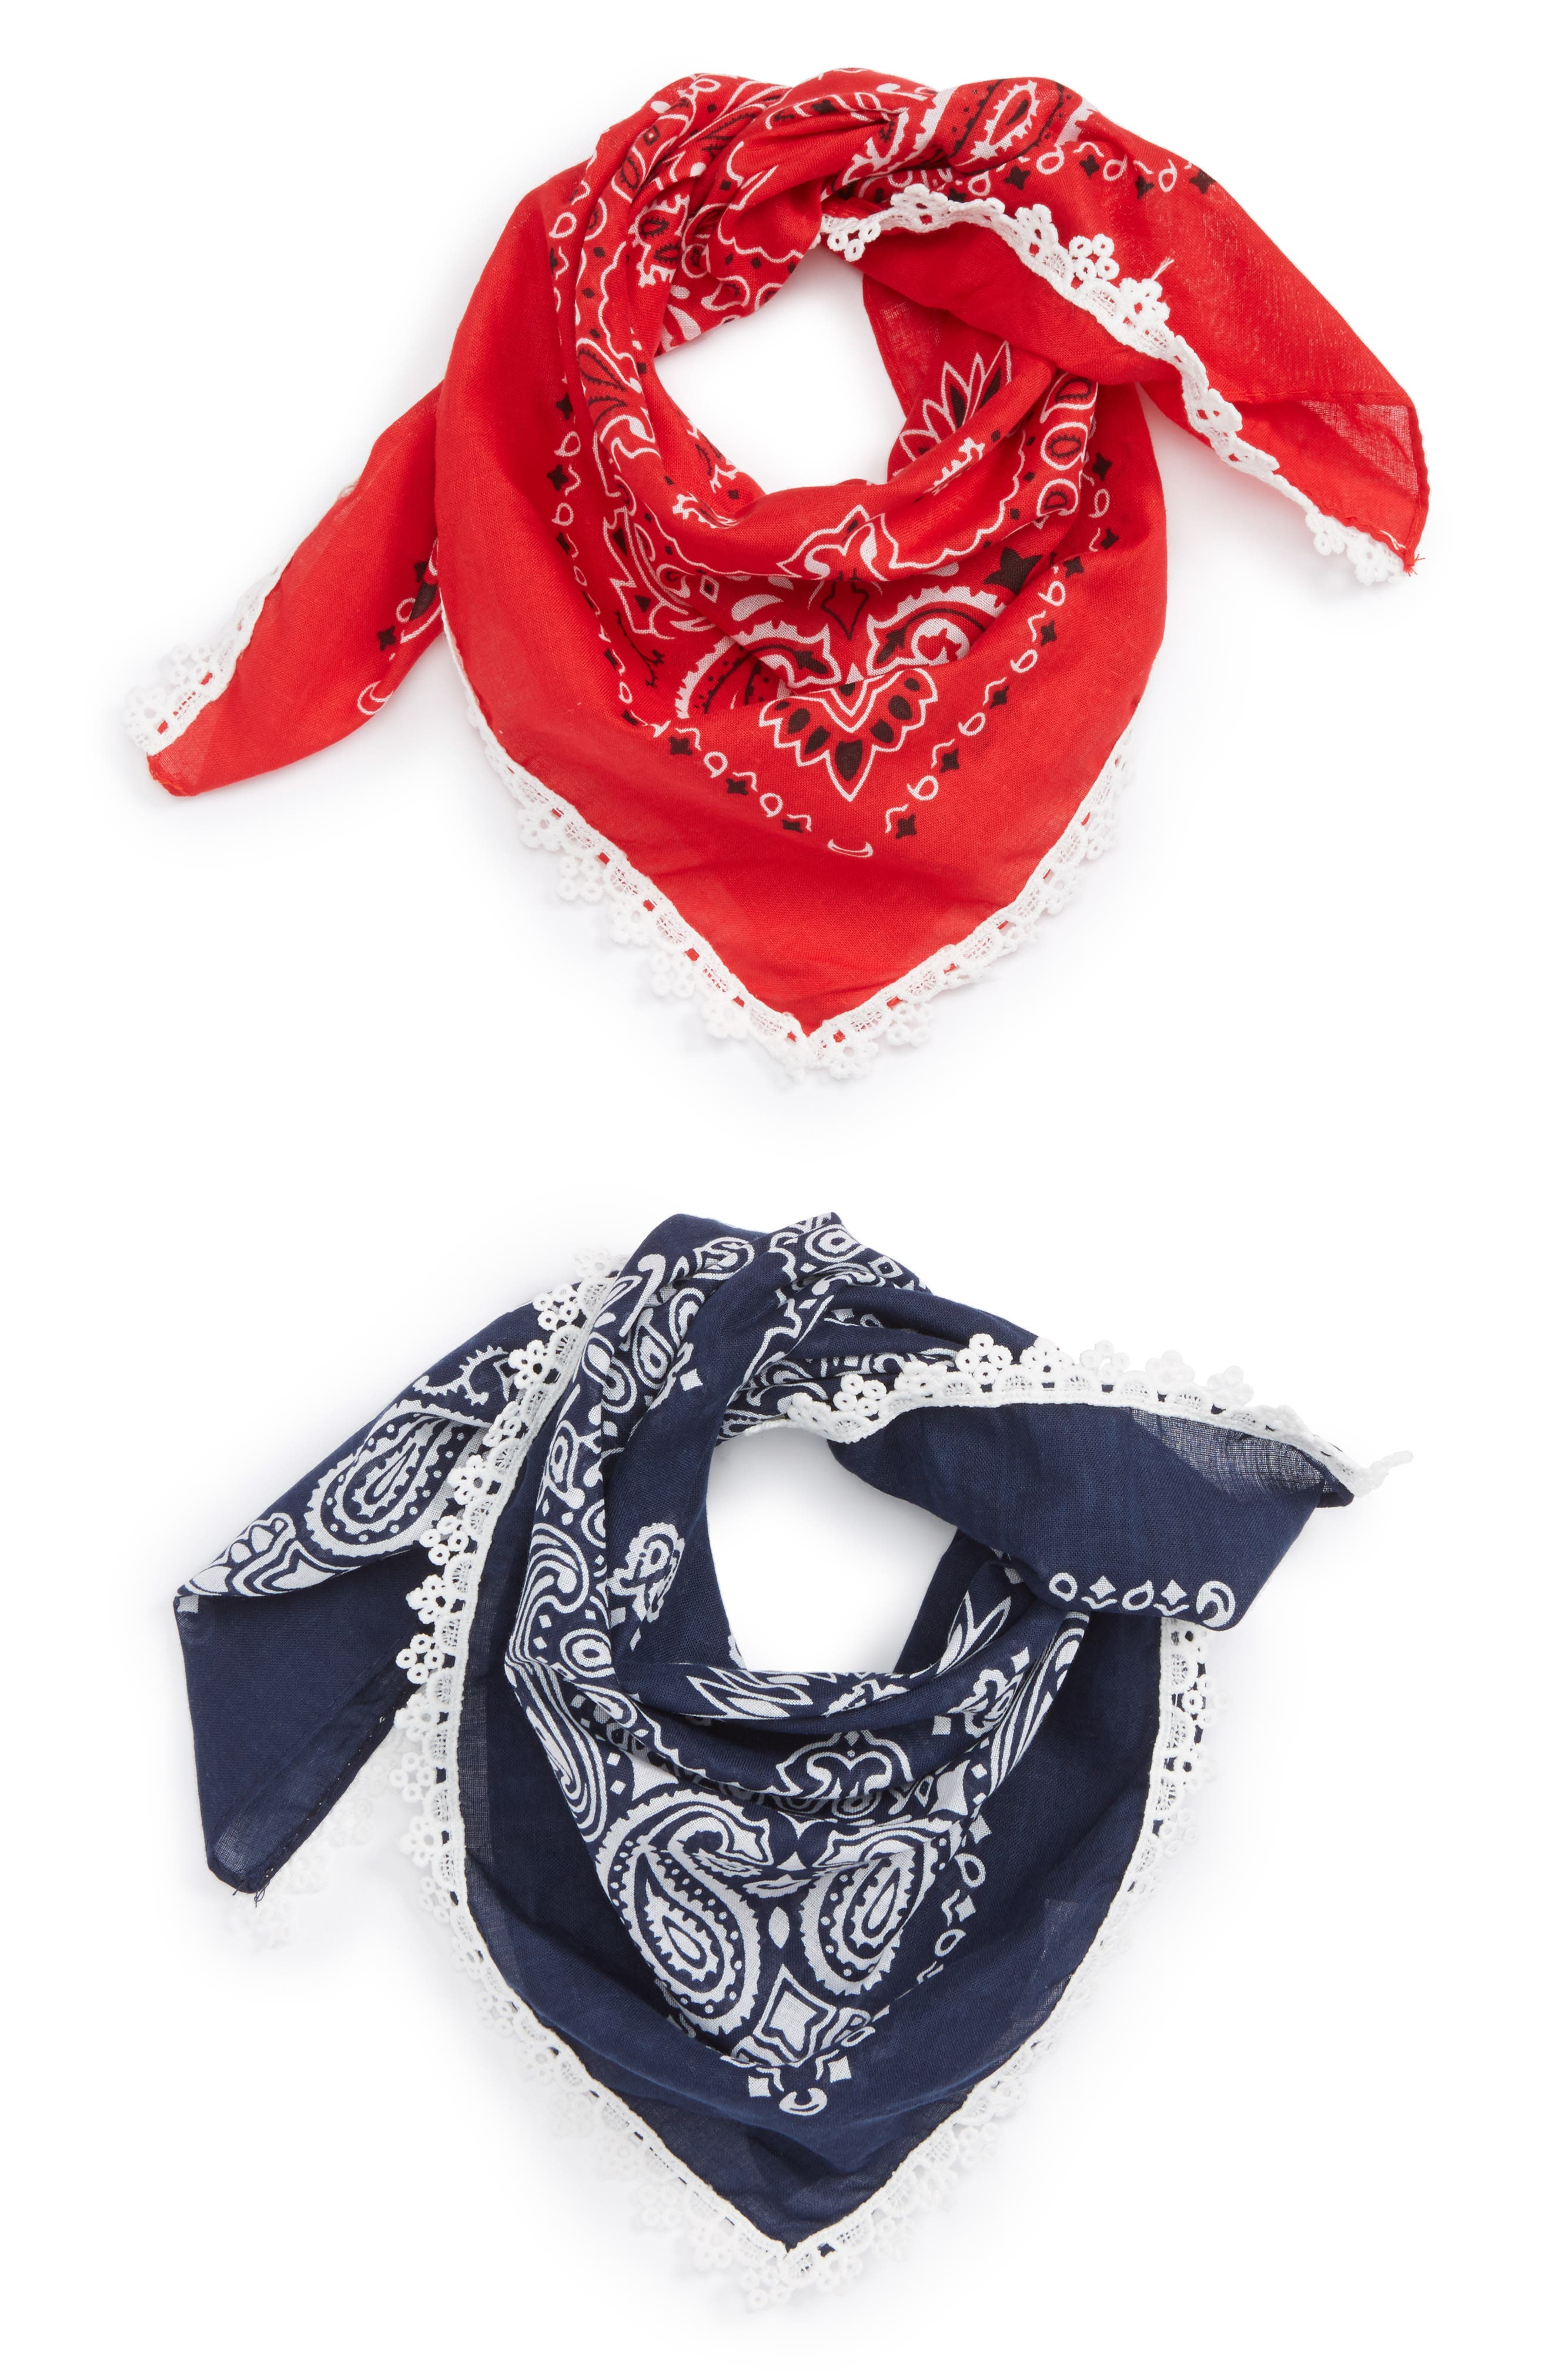 CAPELLI NEW YORK Capelli of New York 2-Pack Lace Trim Bandanas, Main, color, 401